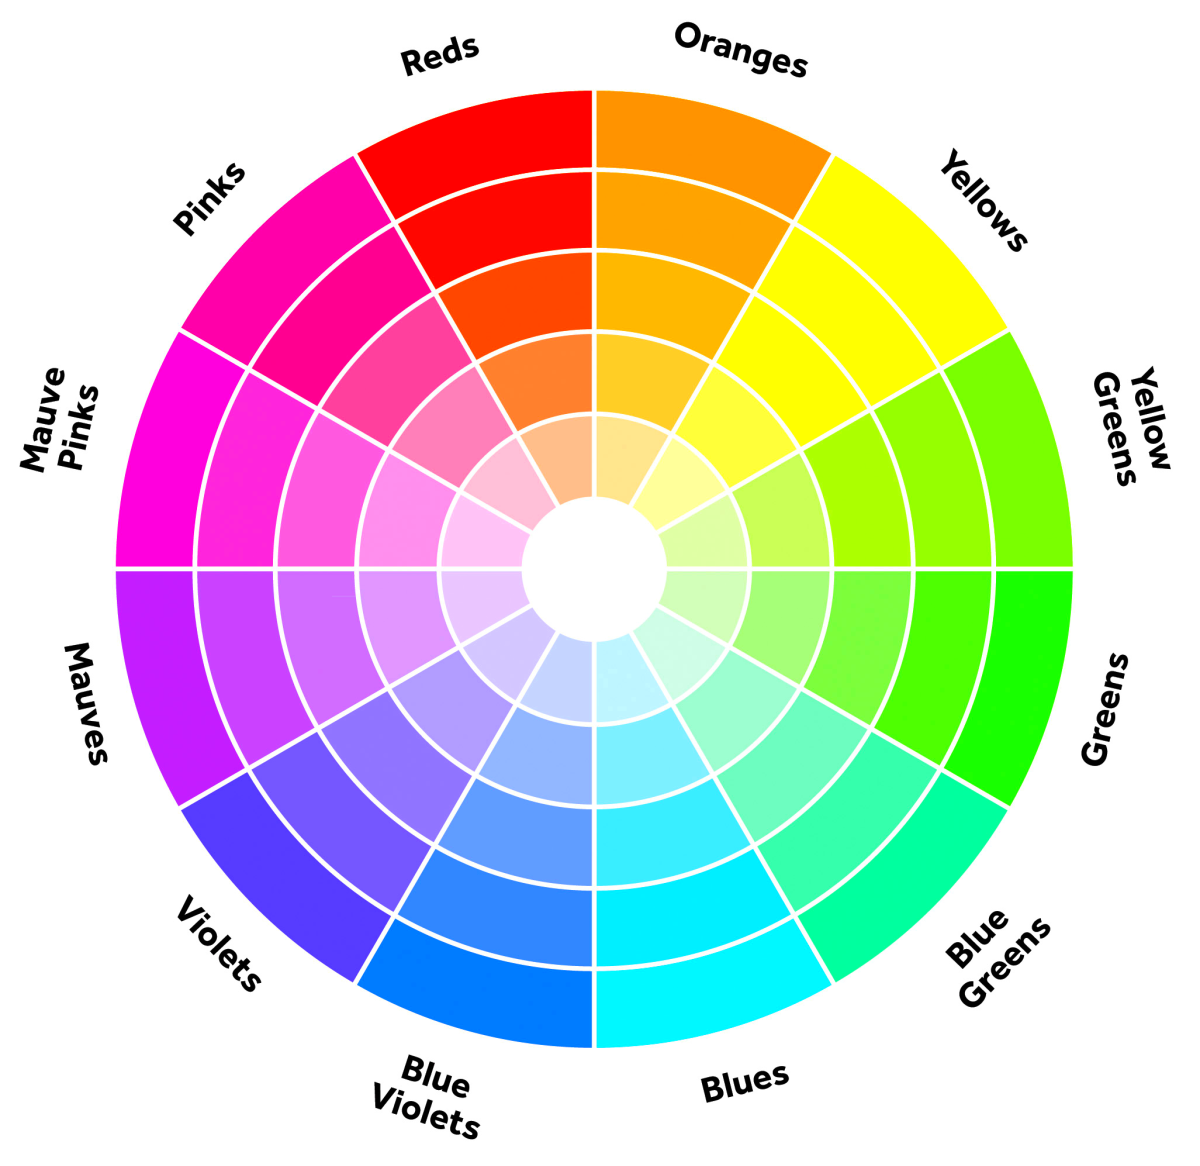 a-mans-guide-to-color-part2-bright-and-muted-tones